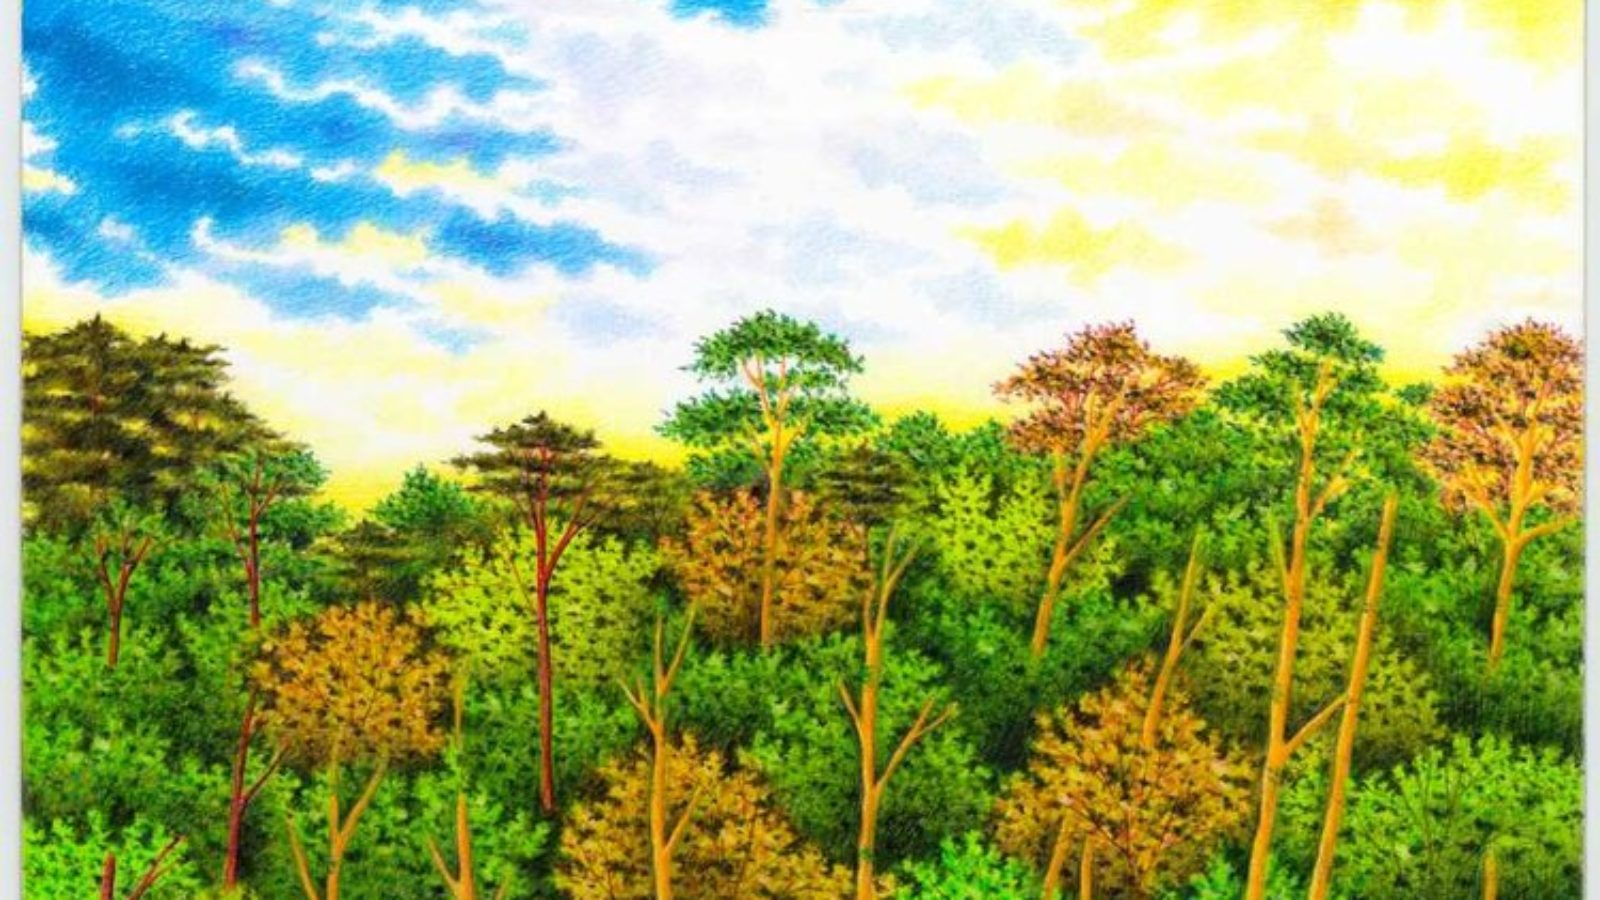 Colored pencils drawing of trees and golf course